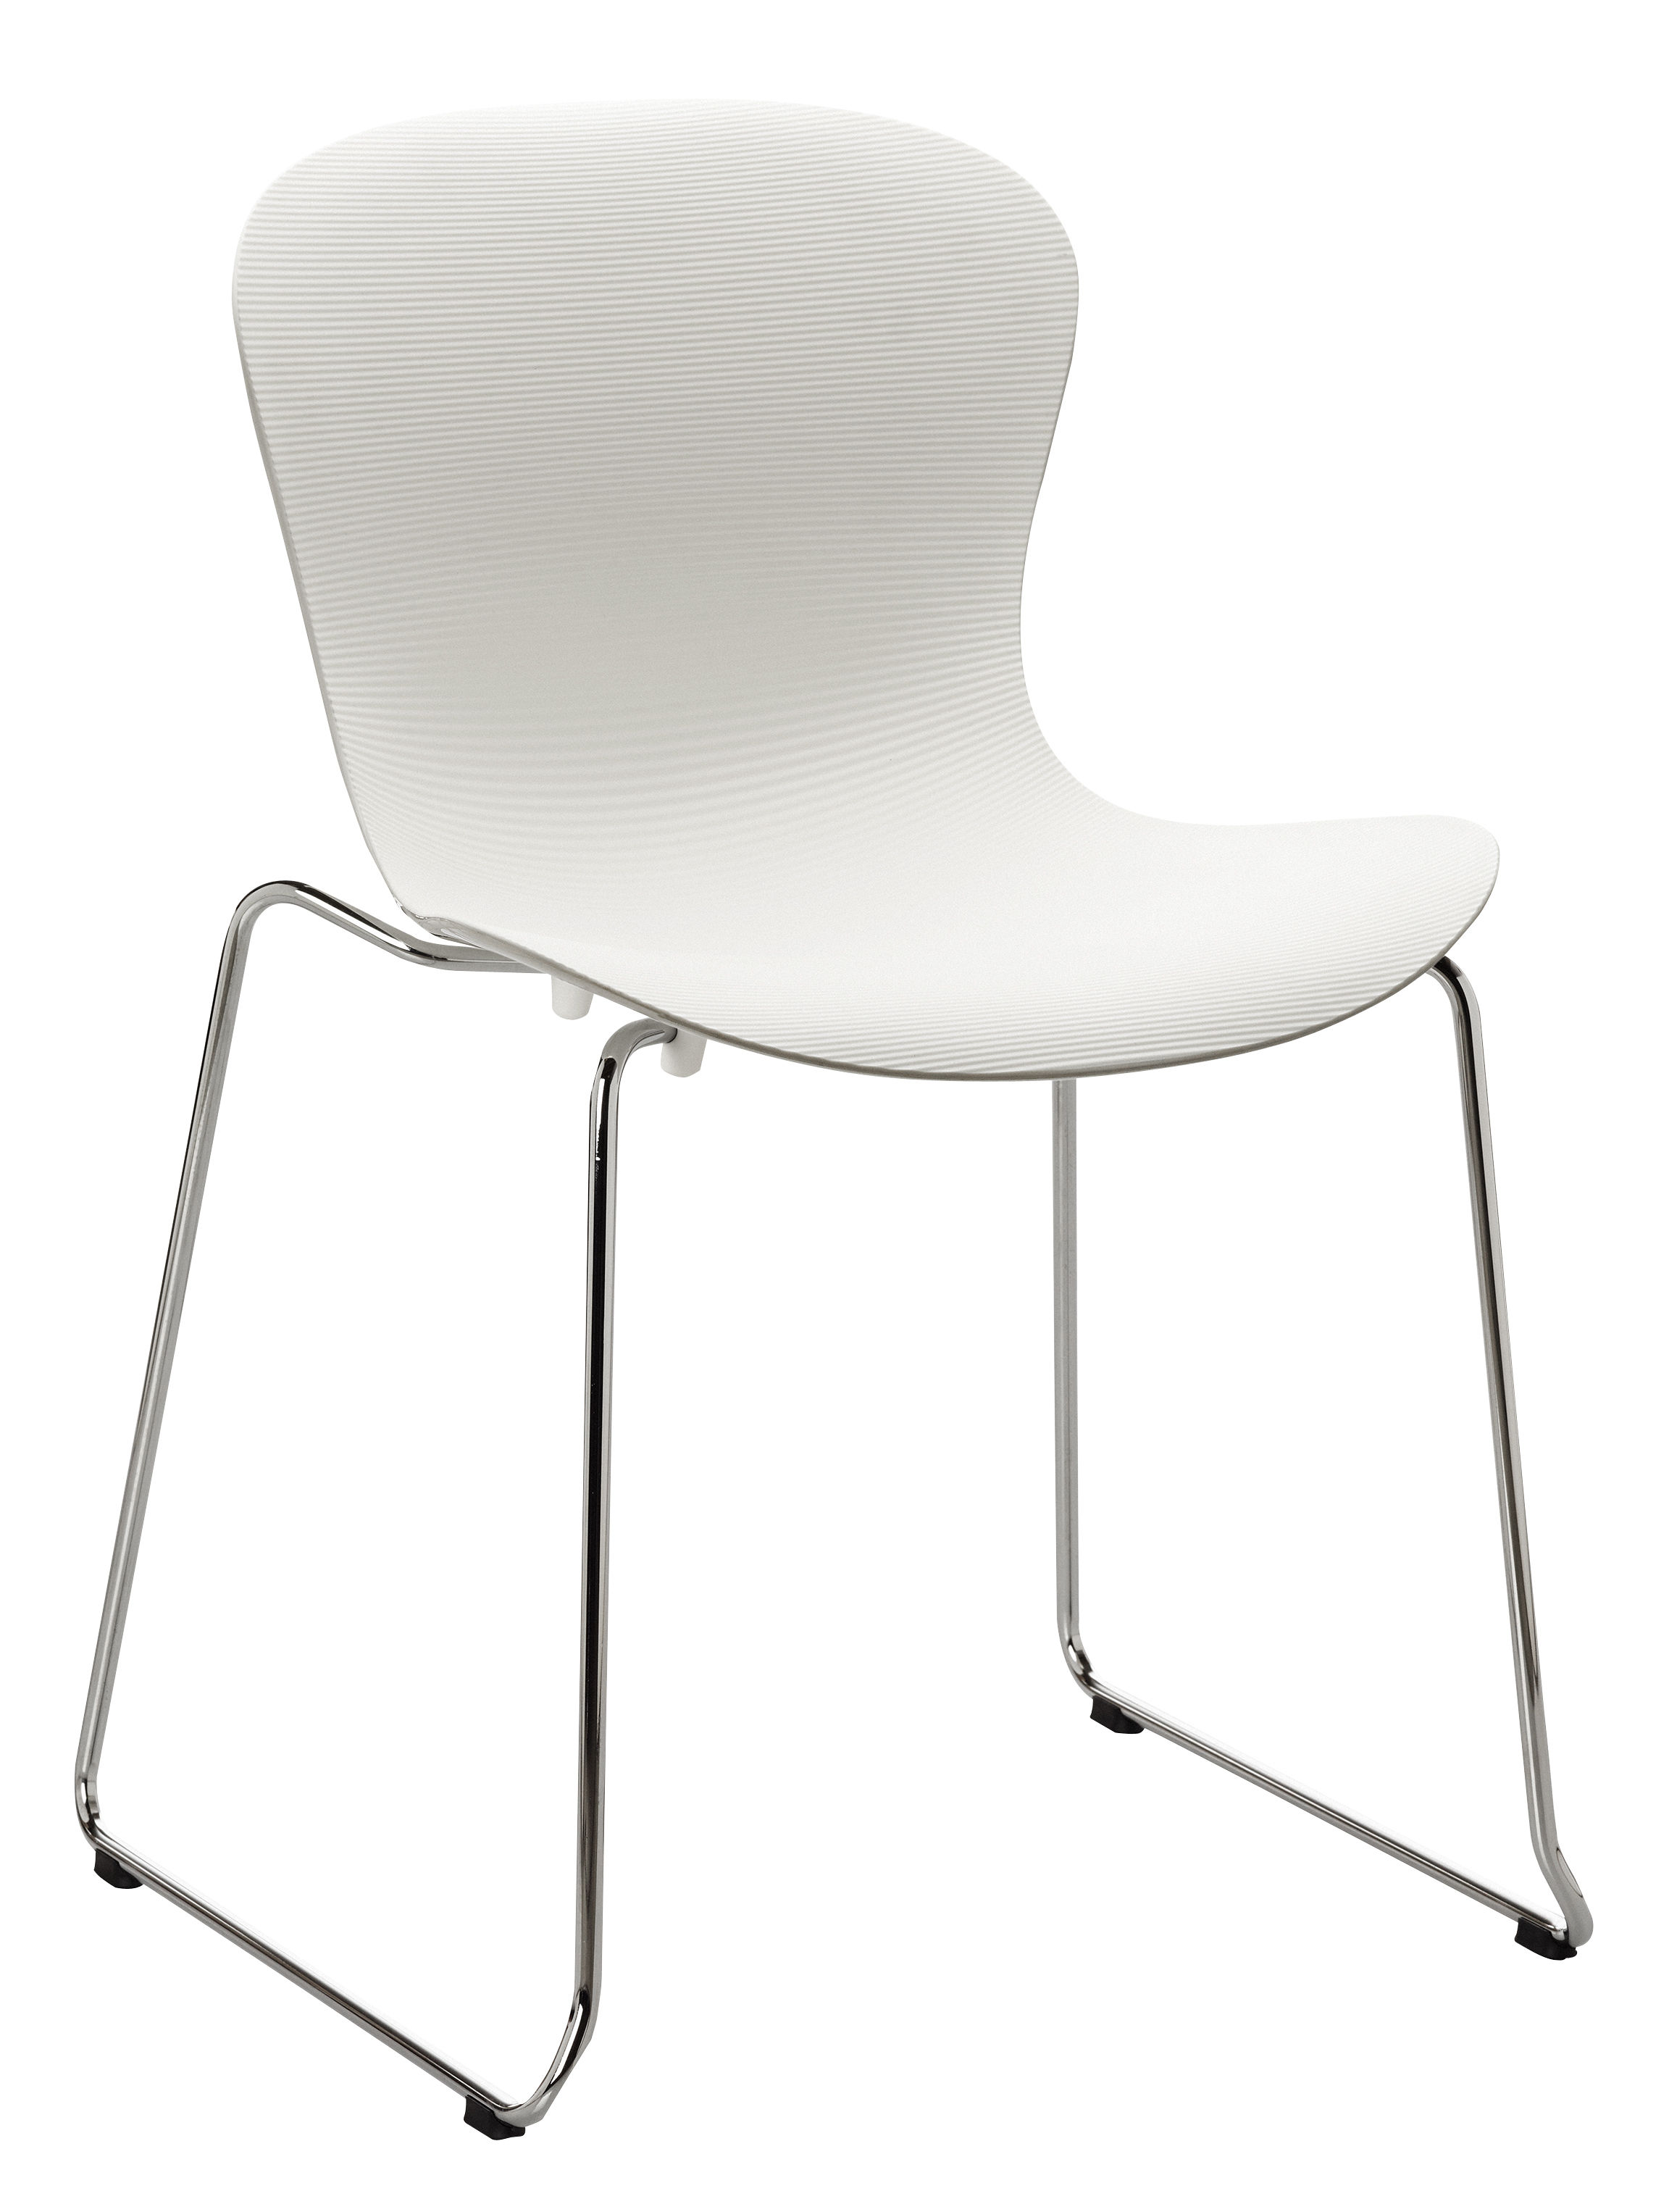 Furniture - Chairs - Nap Stacking chair - Sledge leg by Fritz Hansen - Milk white / Chrome leg - Lacquered steel, Polyamide